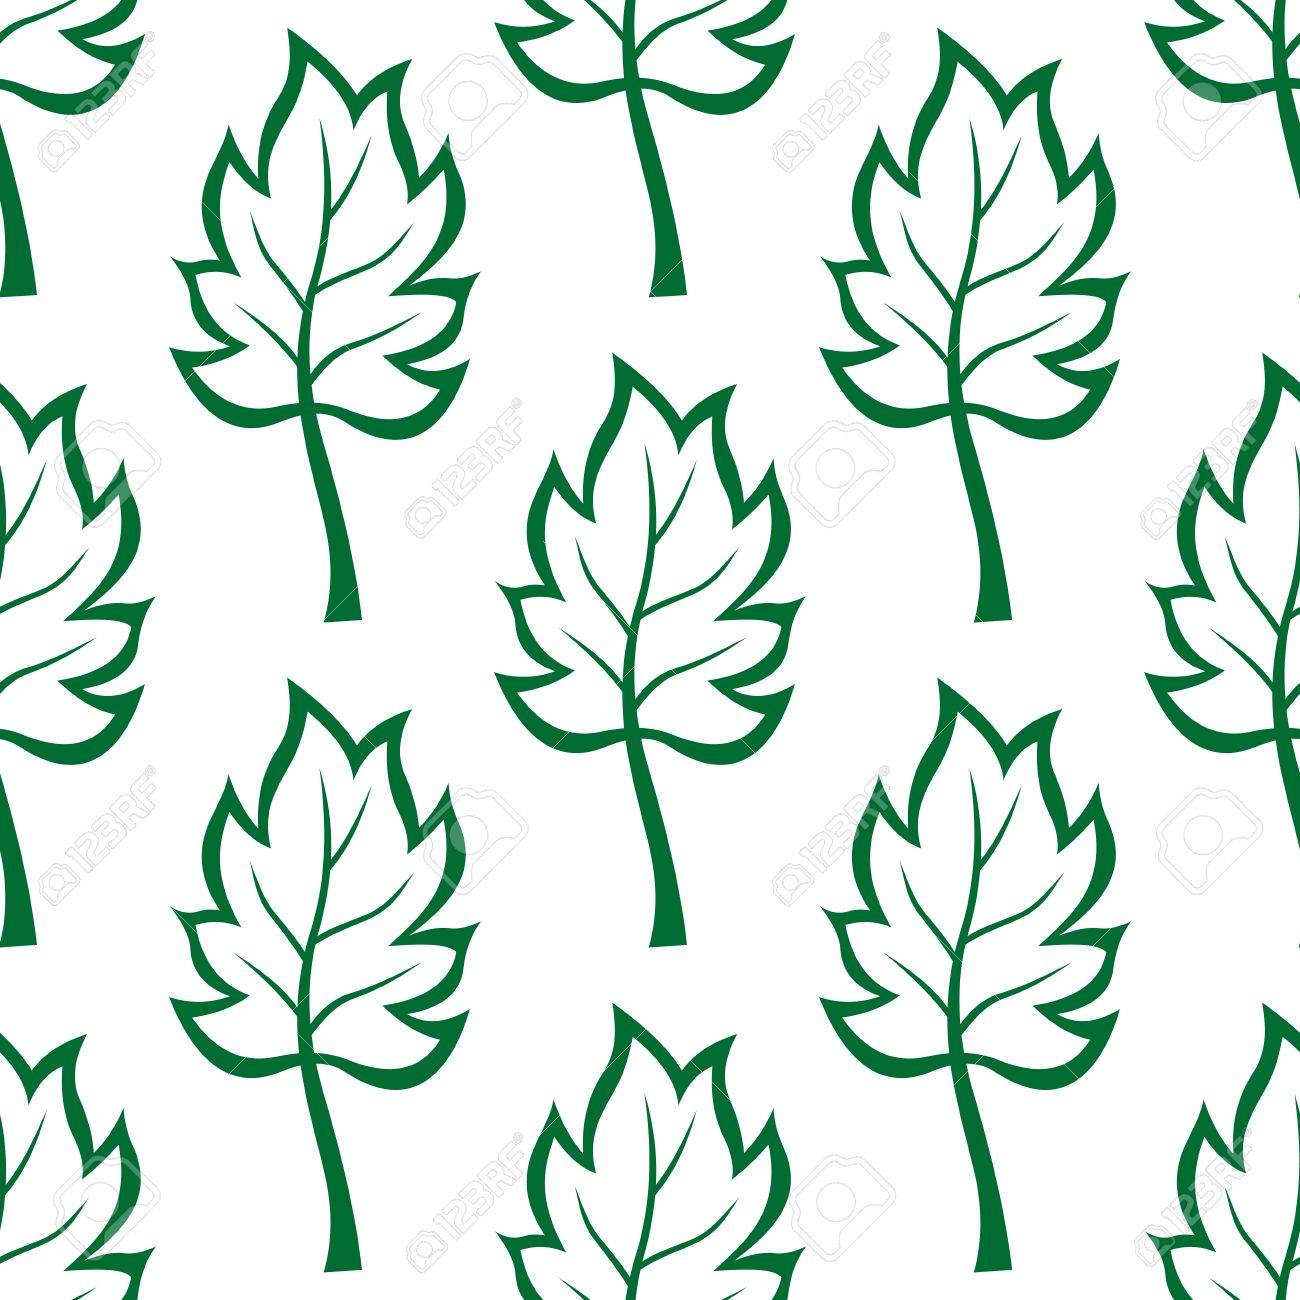 Fabric tree pattern - Seamless Background Pattern Of Green Tree Leaves For Wallpaper Tiles And Fabric Design Stock Vector